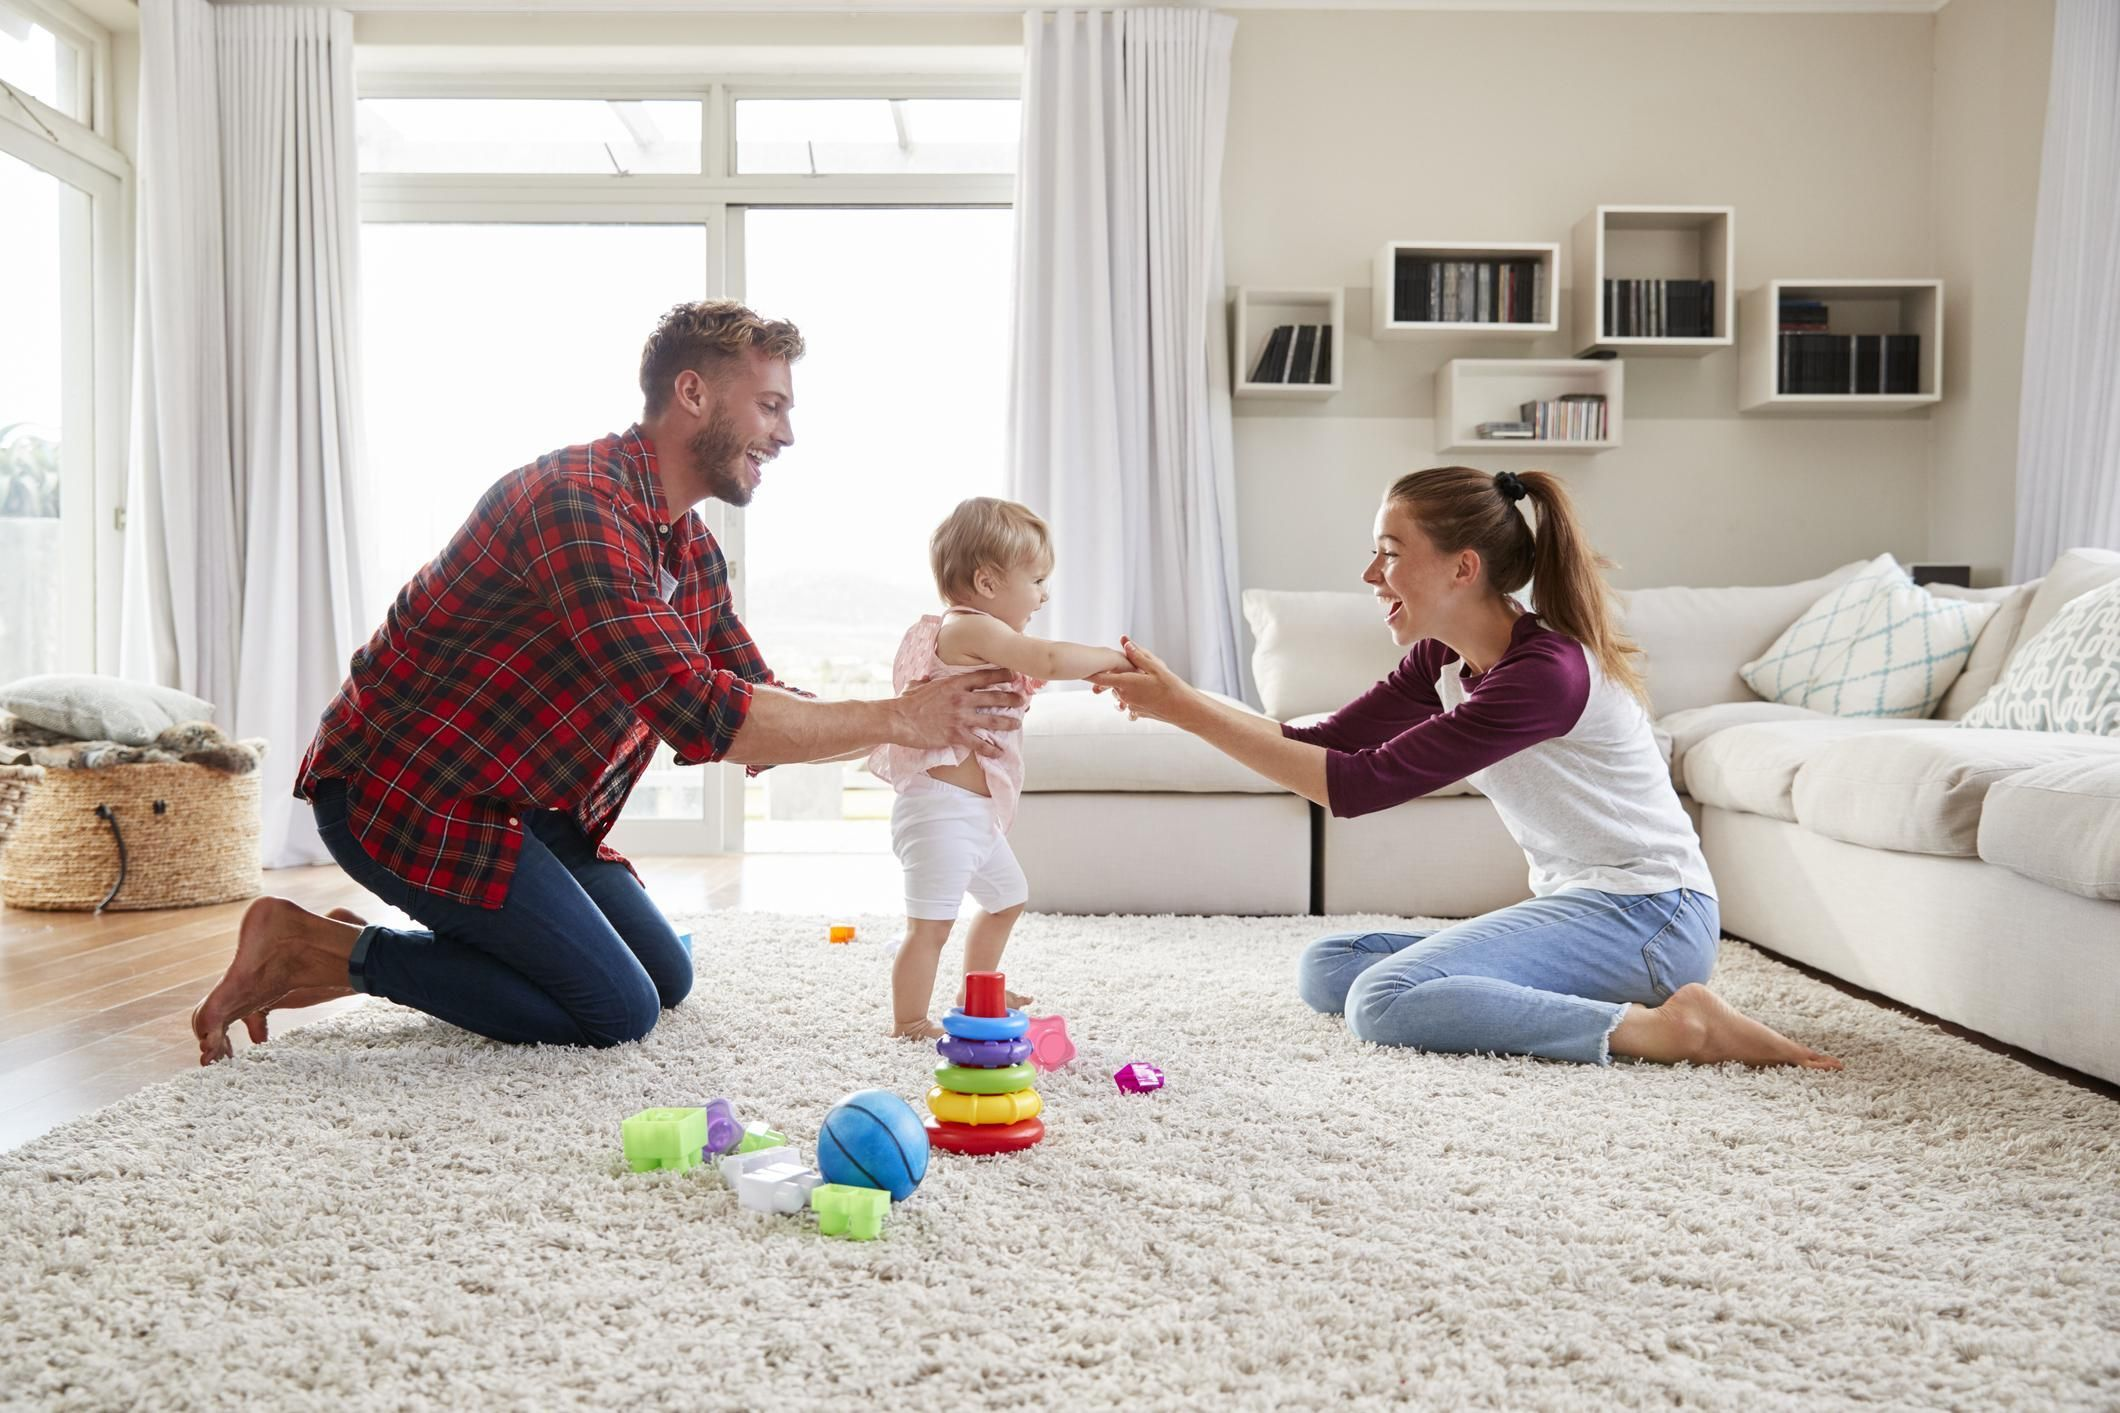 12 Key Tips for Becoming a Good Parent